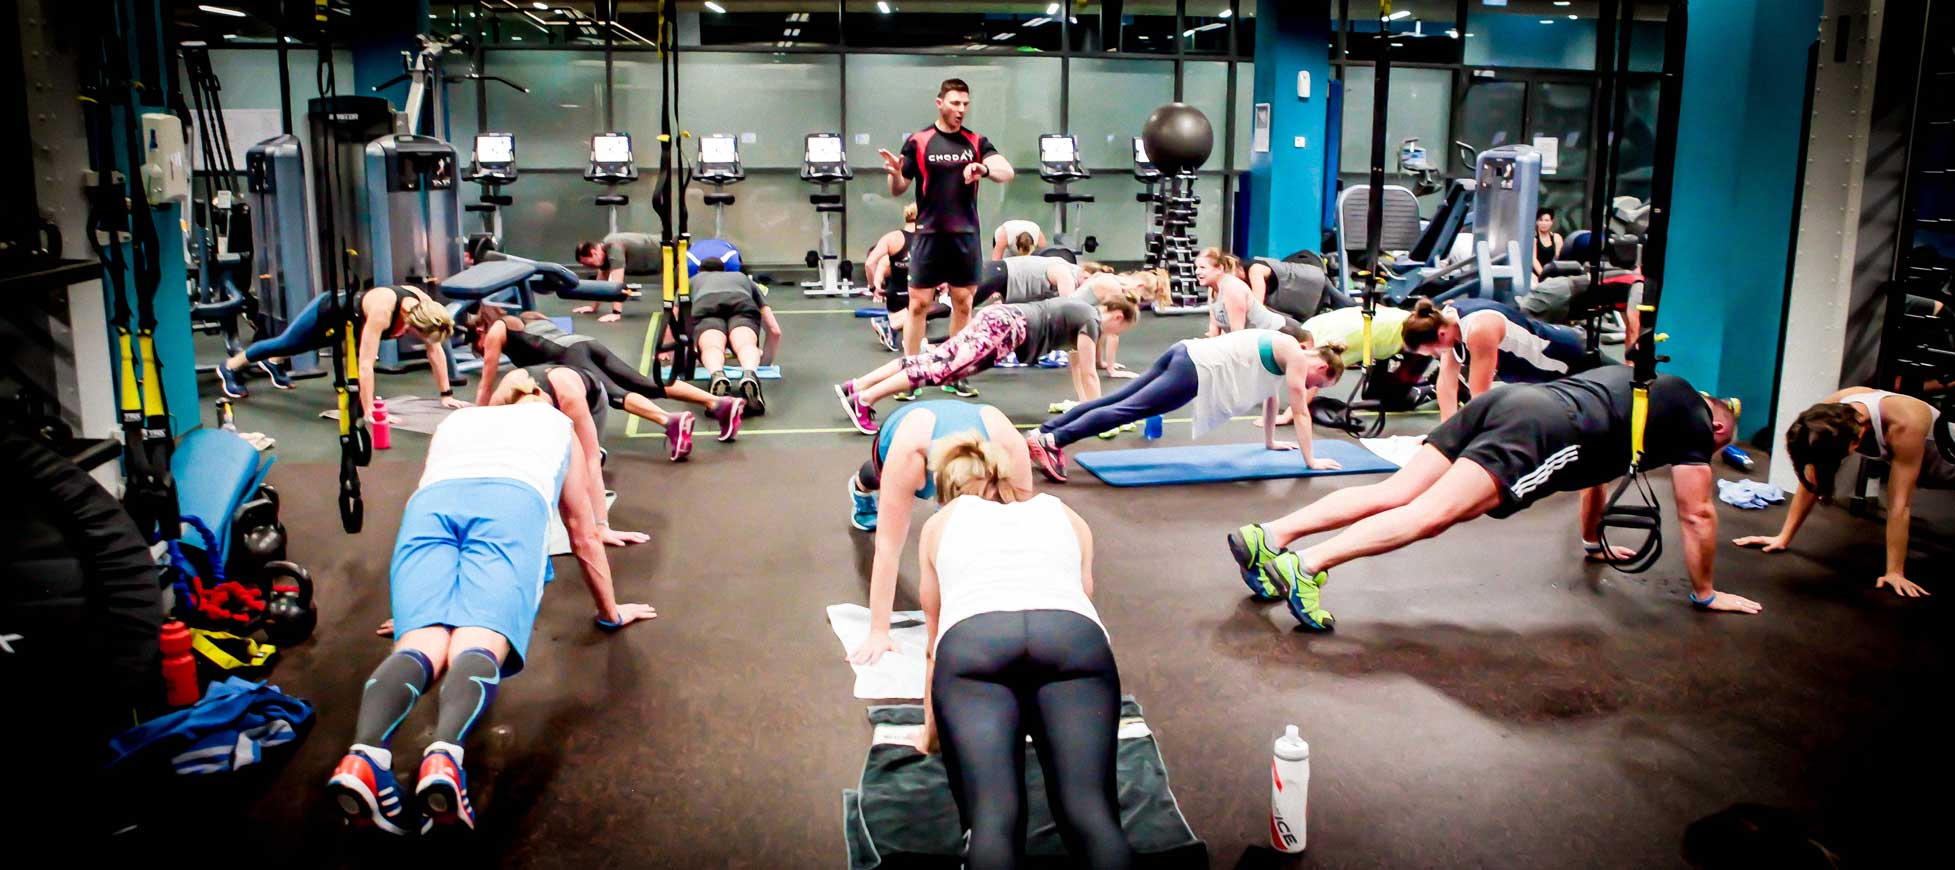 Personal Training in Wollongong That Gets Results!